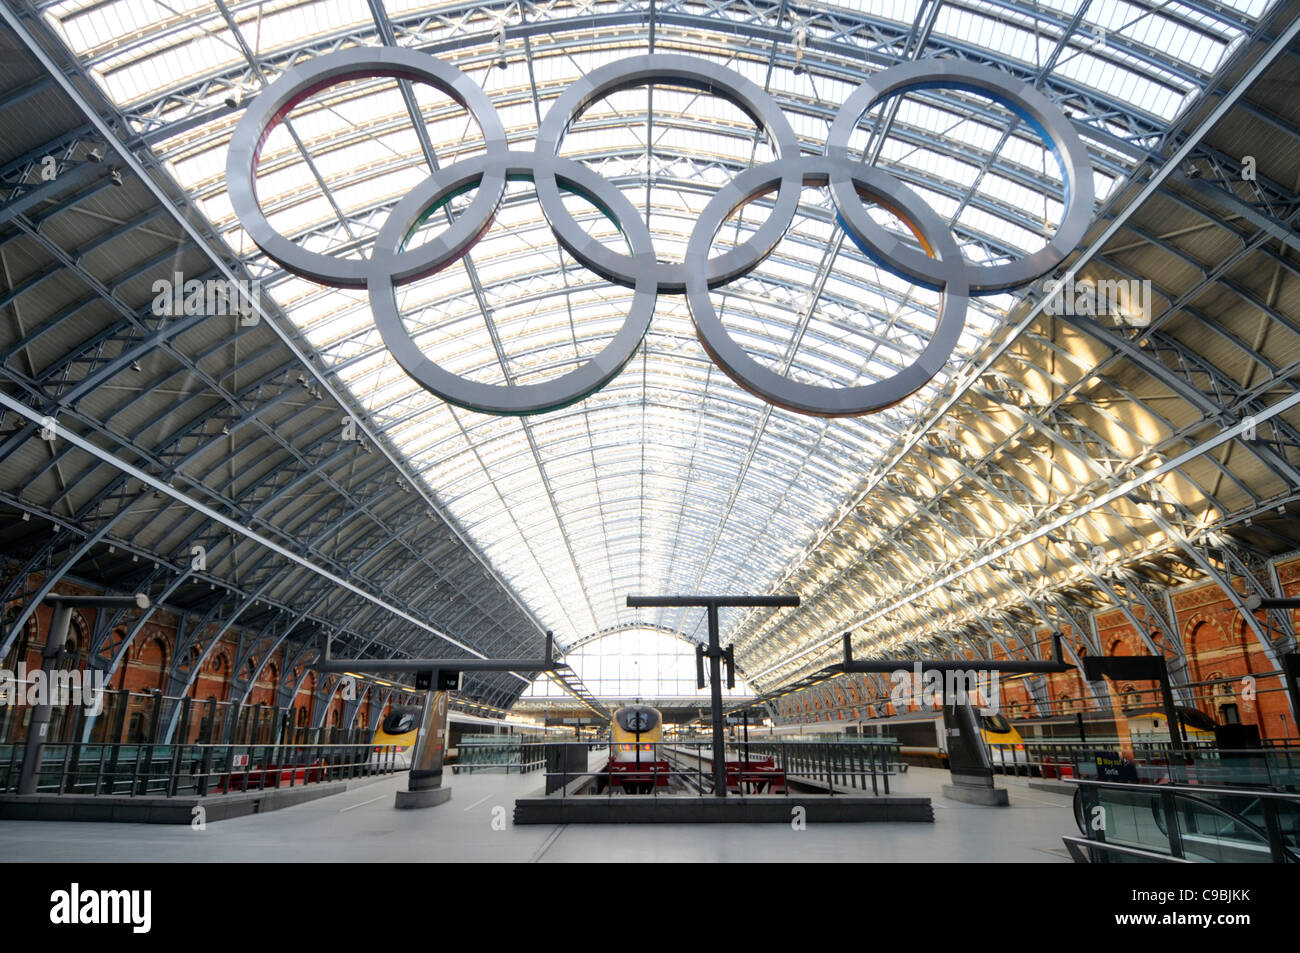 Olympic Rings suspended across the roof space of the Barlow Shed at St Pancras International Eurostar train station - Stock Image